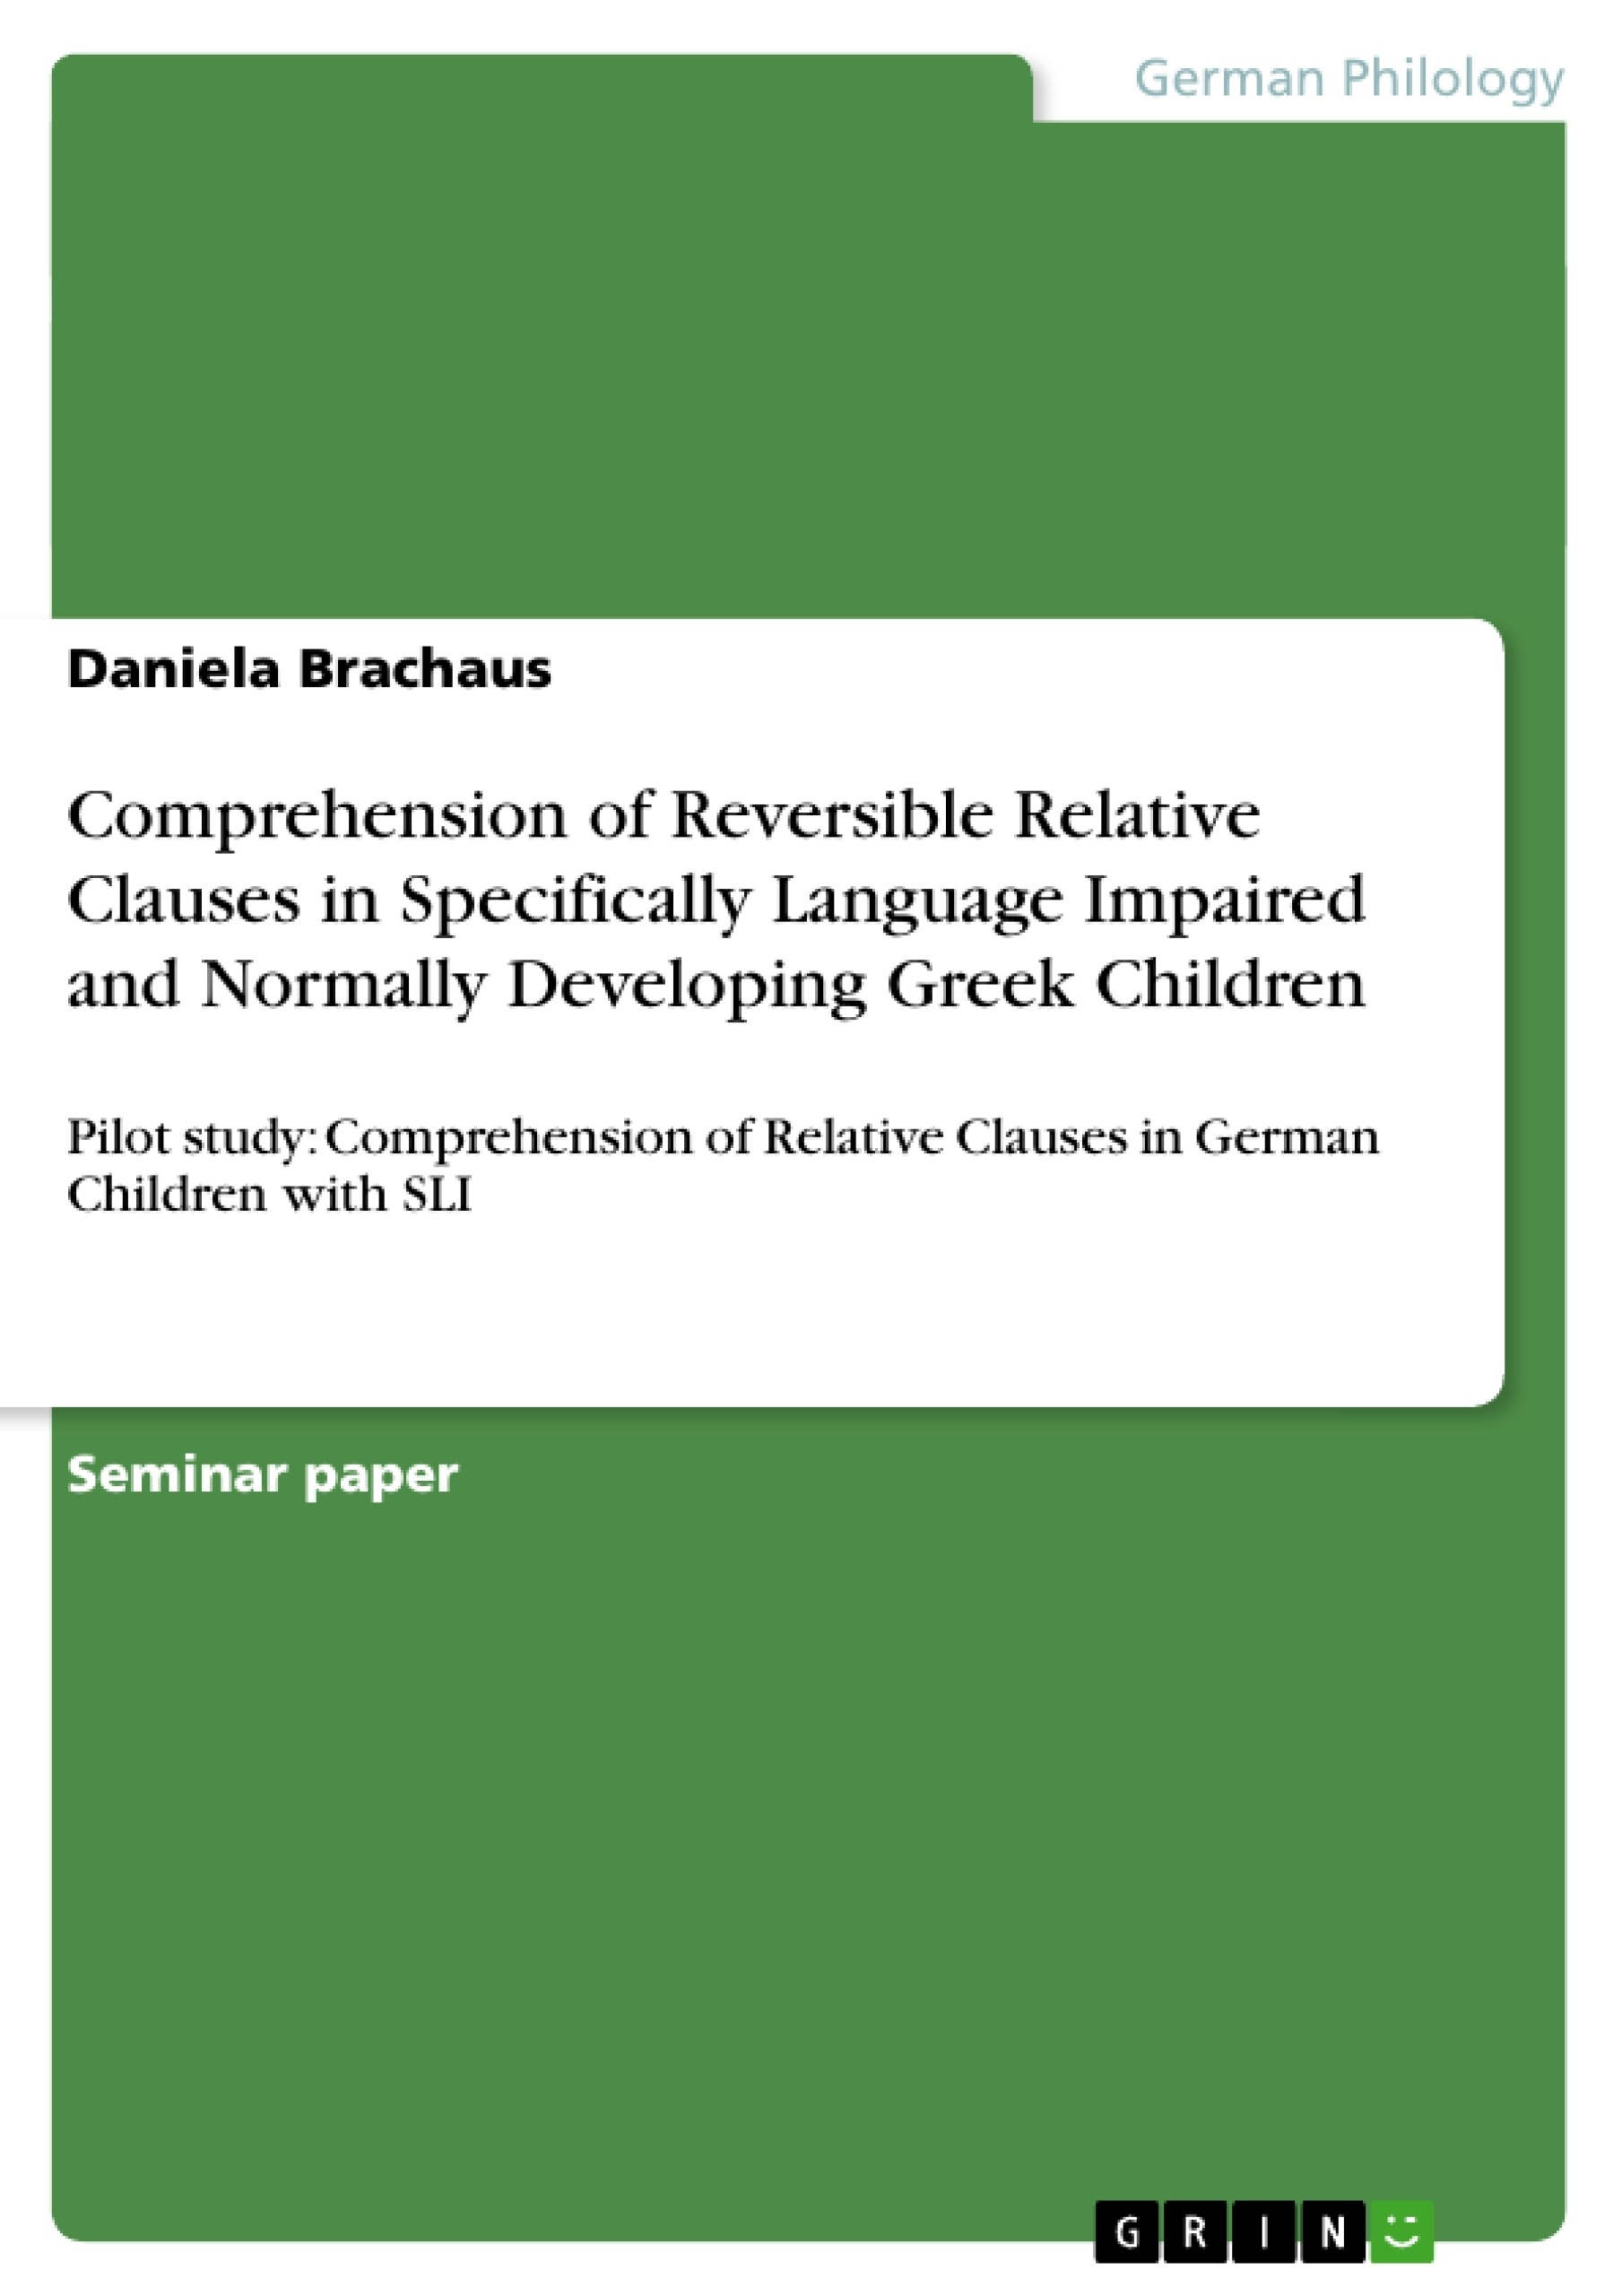 Title: Comprehension of Reversible Relative Clauses in Specifically Language Impaired and Normally Developing Greek  Children